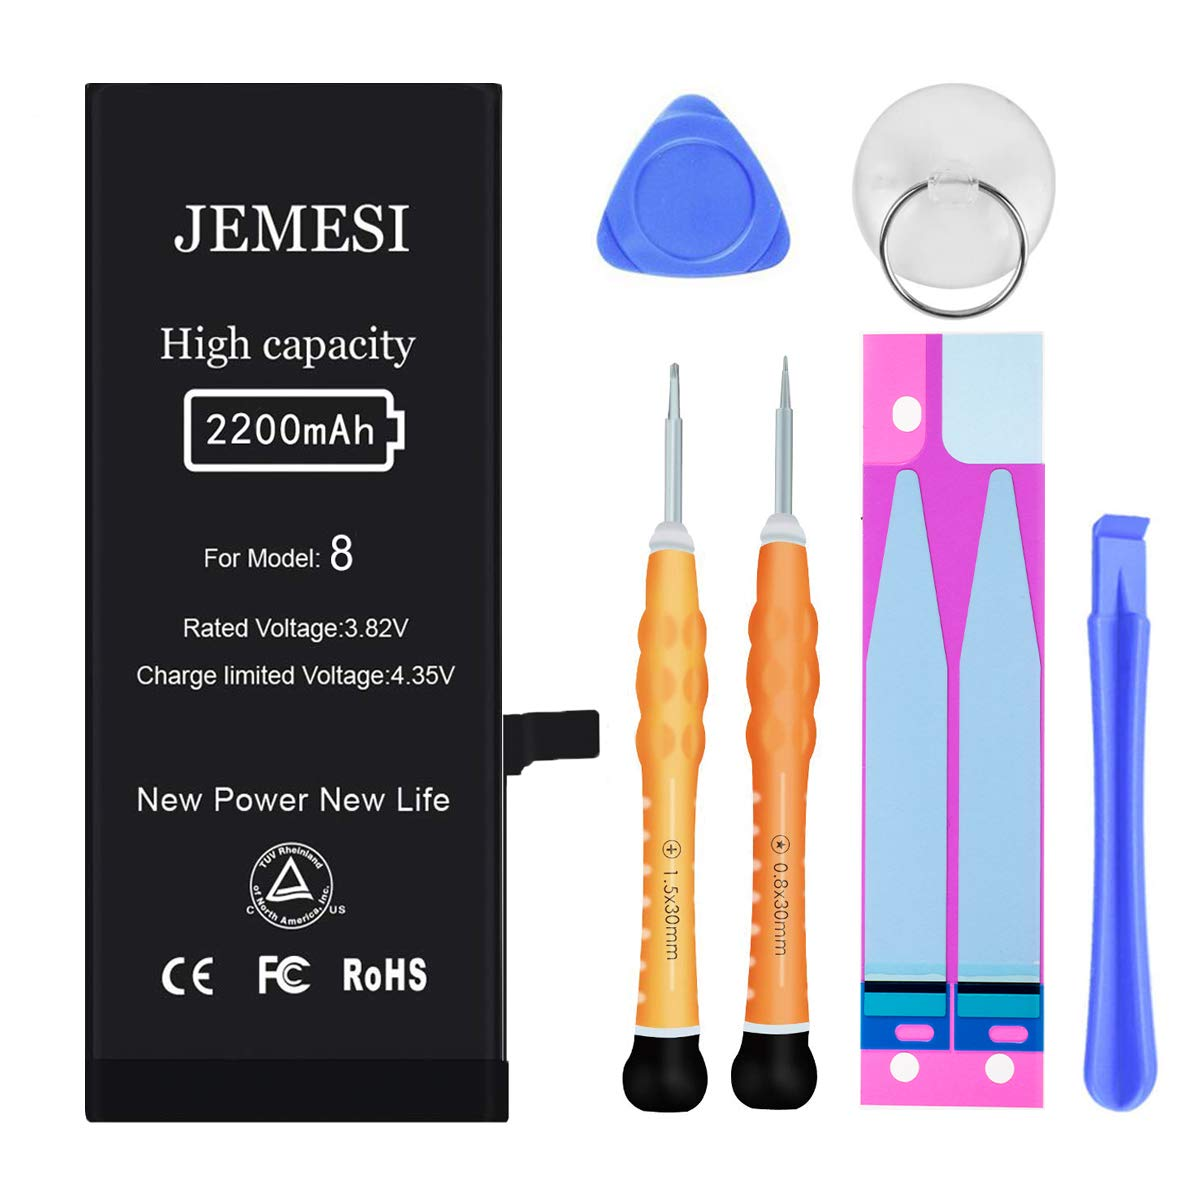 JEMESI Battery Compatible with iPhone 8, New 2200mAh High Capacity Replacement Battery, with Professional Repair Tools and Install Manual- 1 Year Warranty by JEMESI